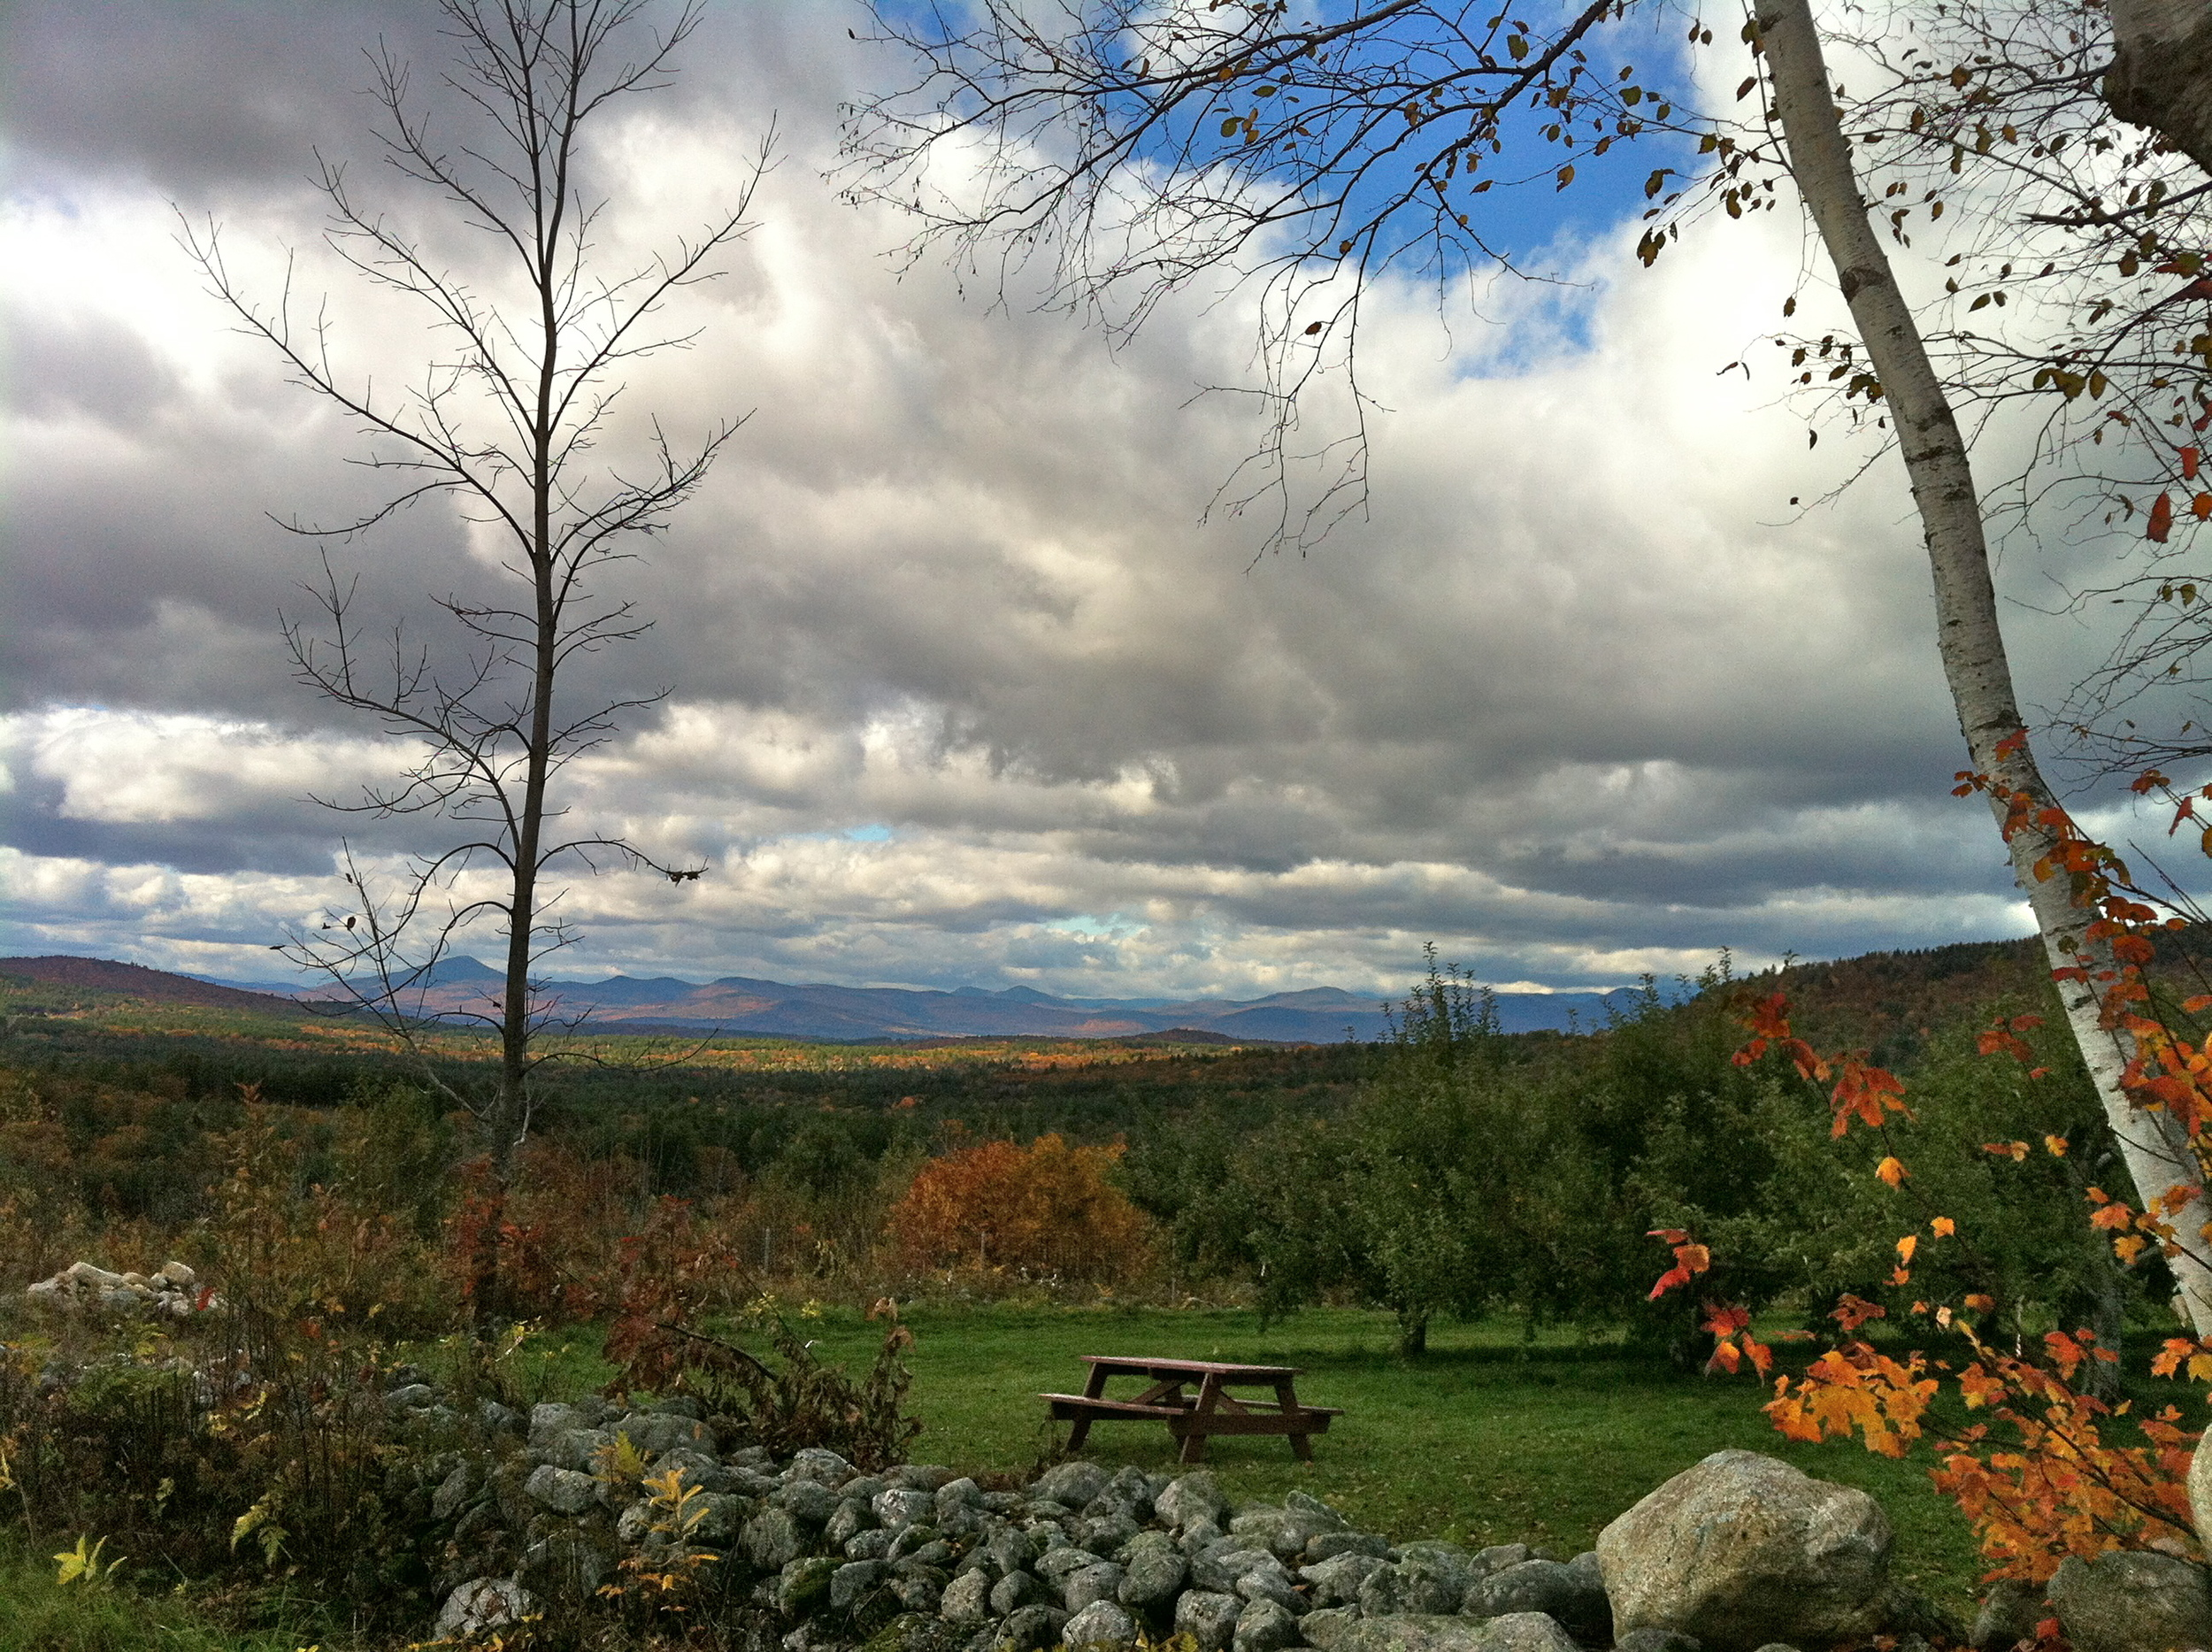 The Orchard is Stunning in the Fall